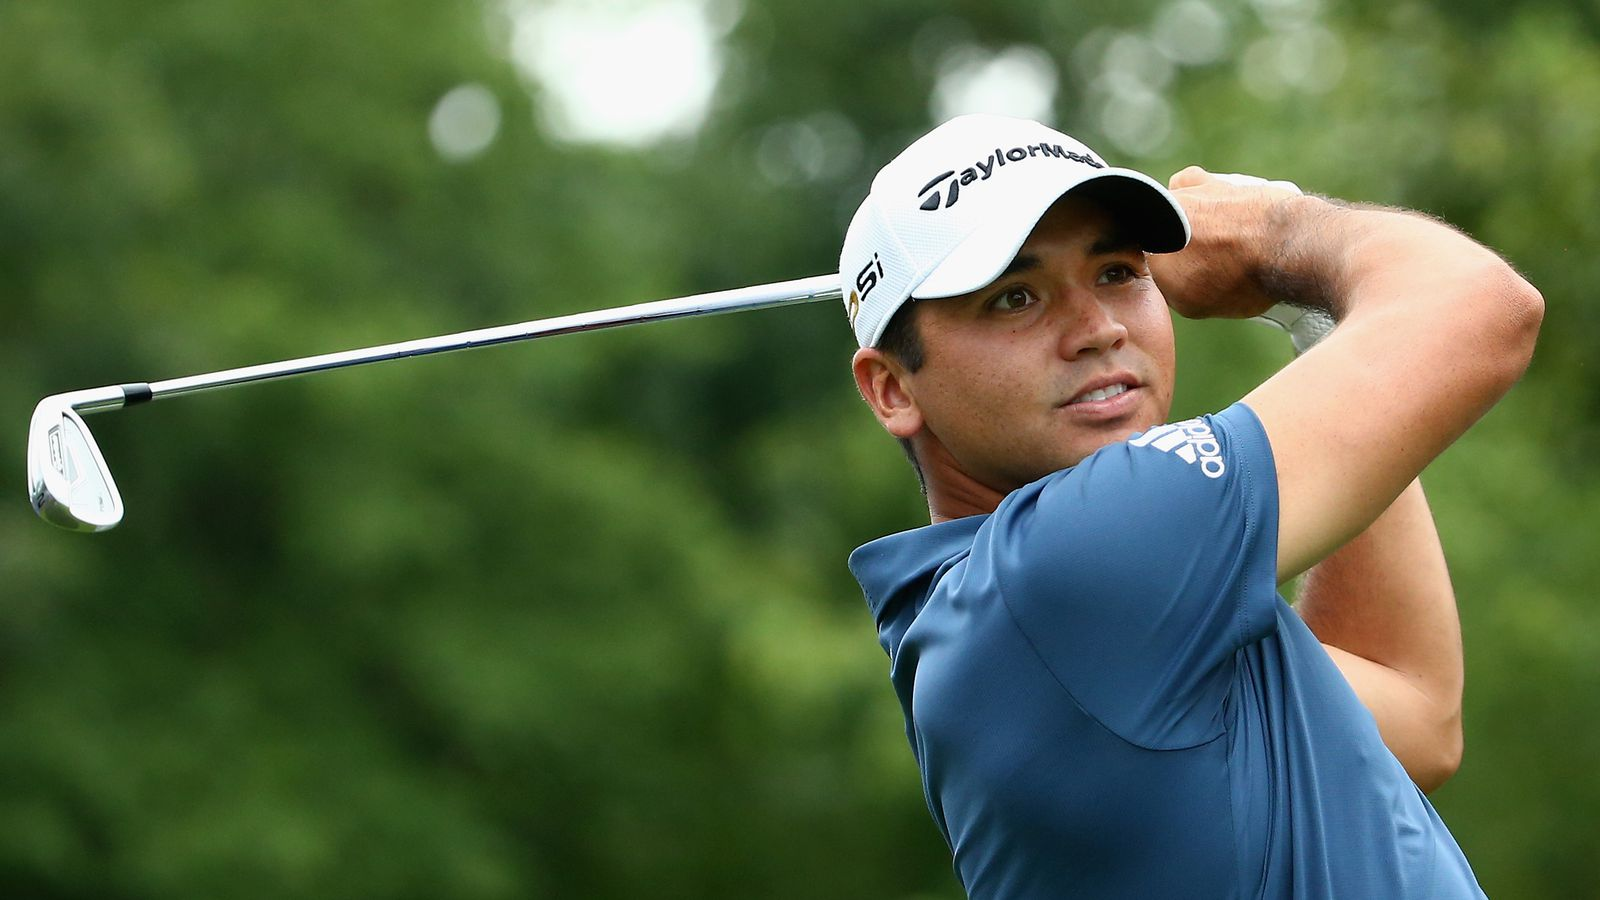 Bmw Championship 2016 Tee Times And Pairings For Round 1